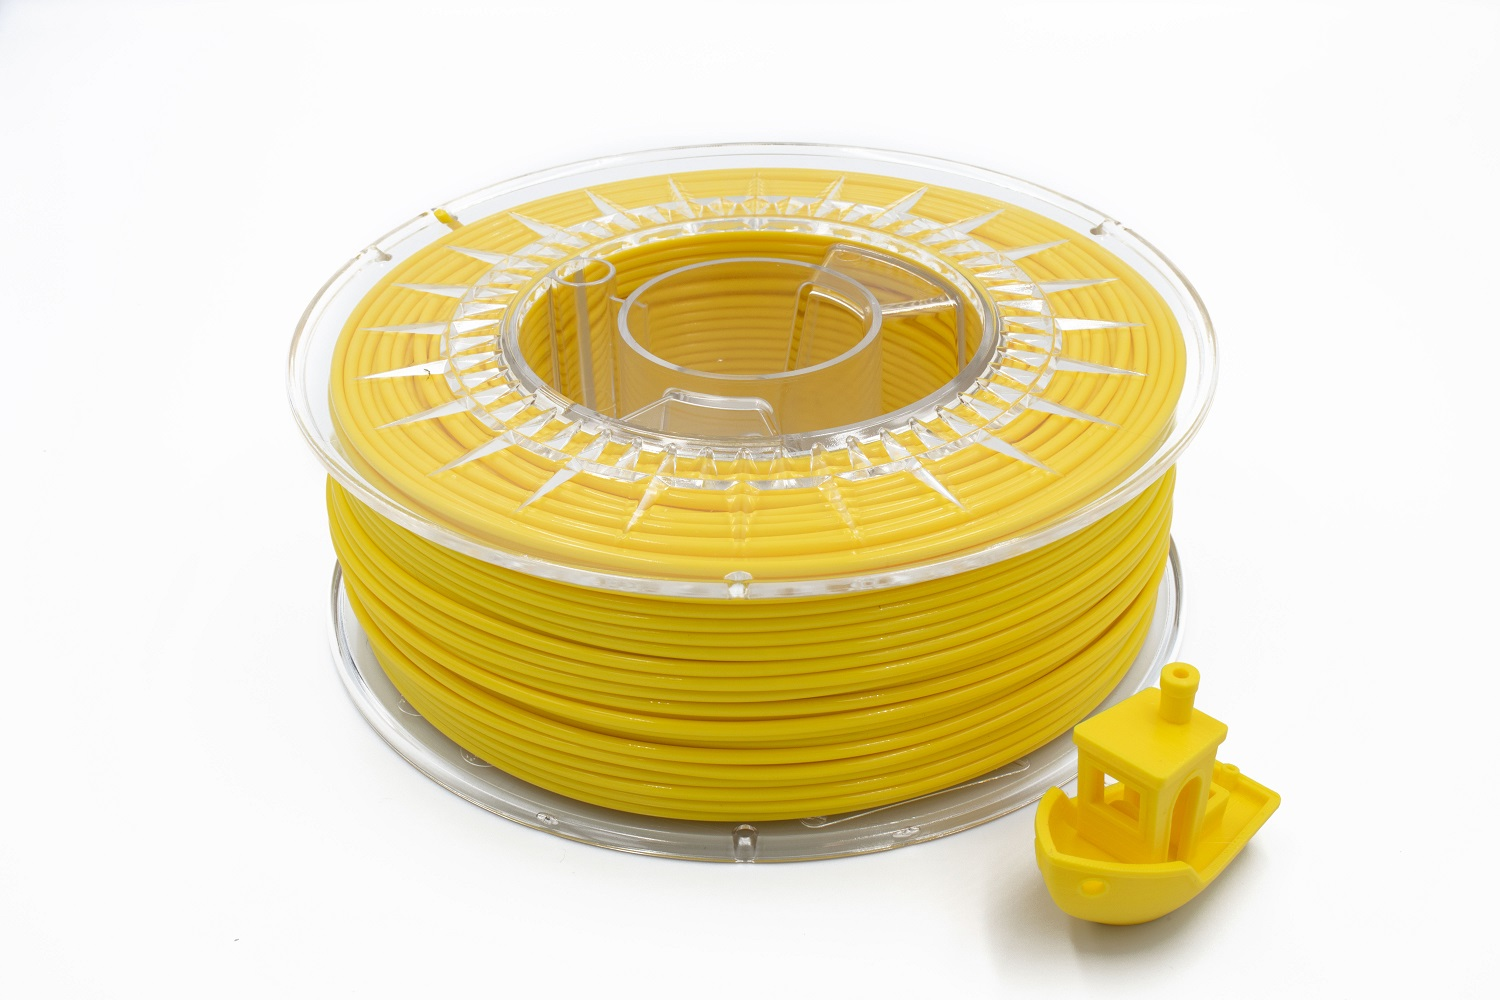 More info on Yellow Taxi Filament